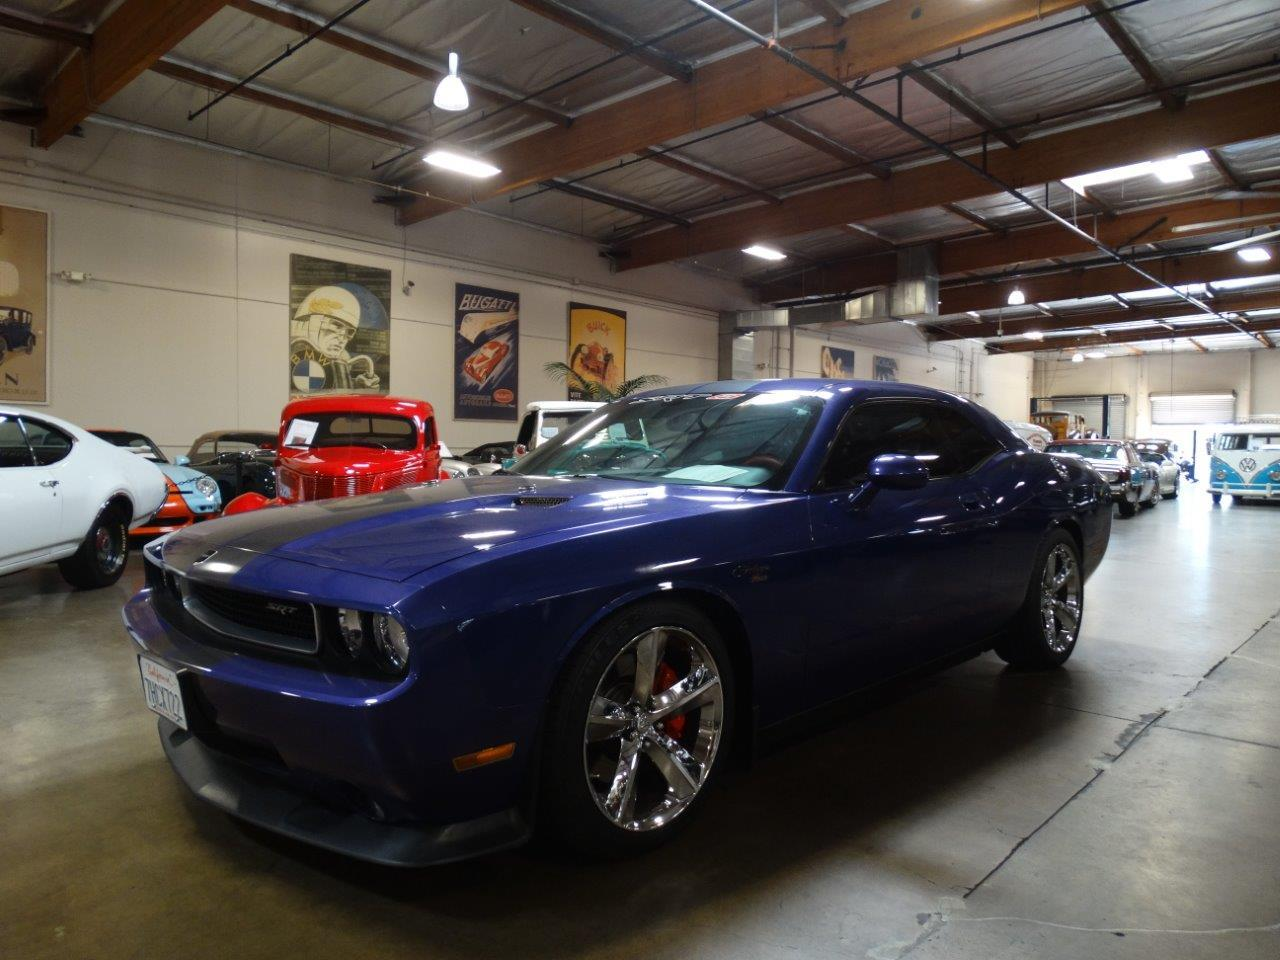 2010 Dodge Challenger for sale in Costa Mesa, CA – photo 7